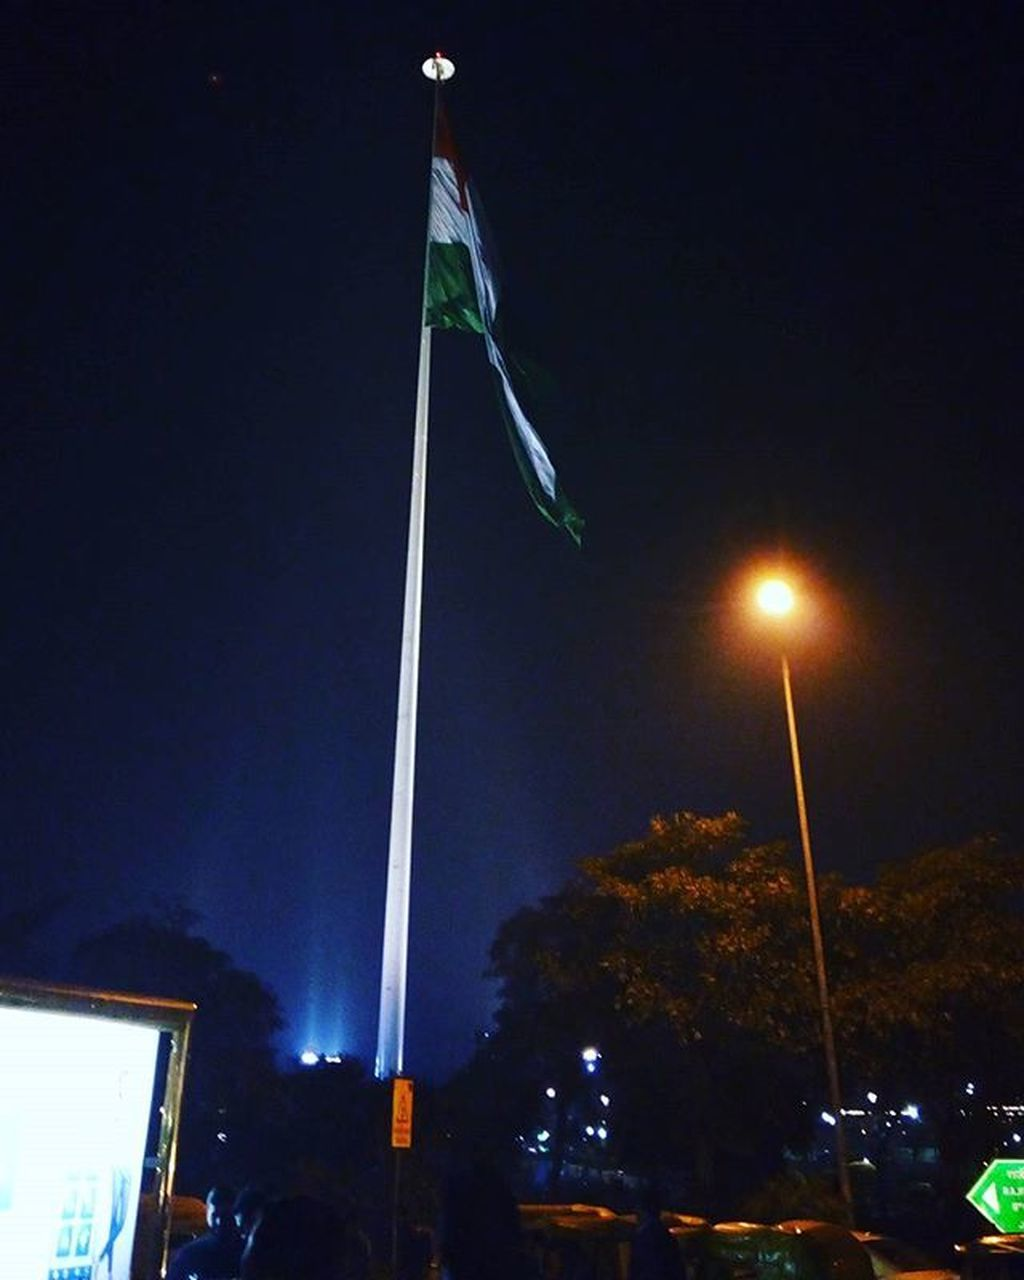 flag, night, illuminated, patriotism, low angle view, street light, architecture, outdoors, built structure, no people, building exterior, city, sky